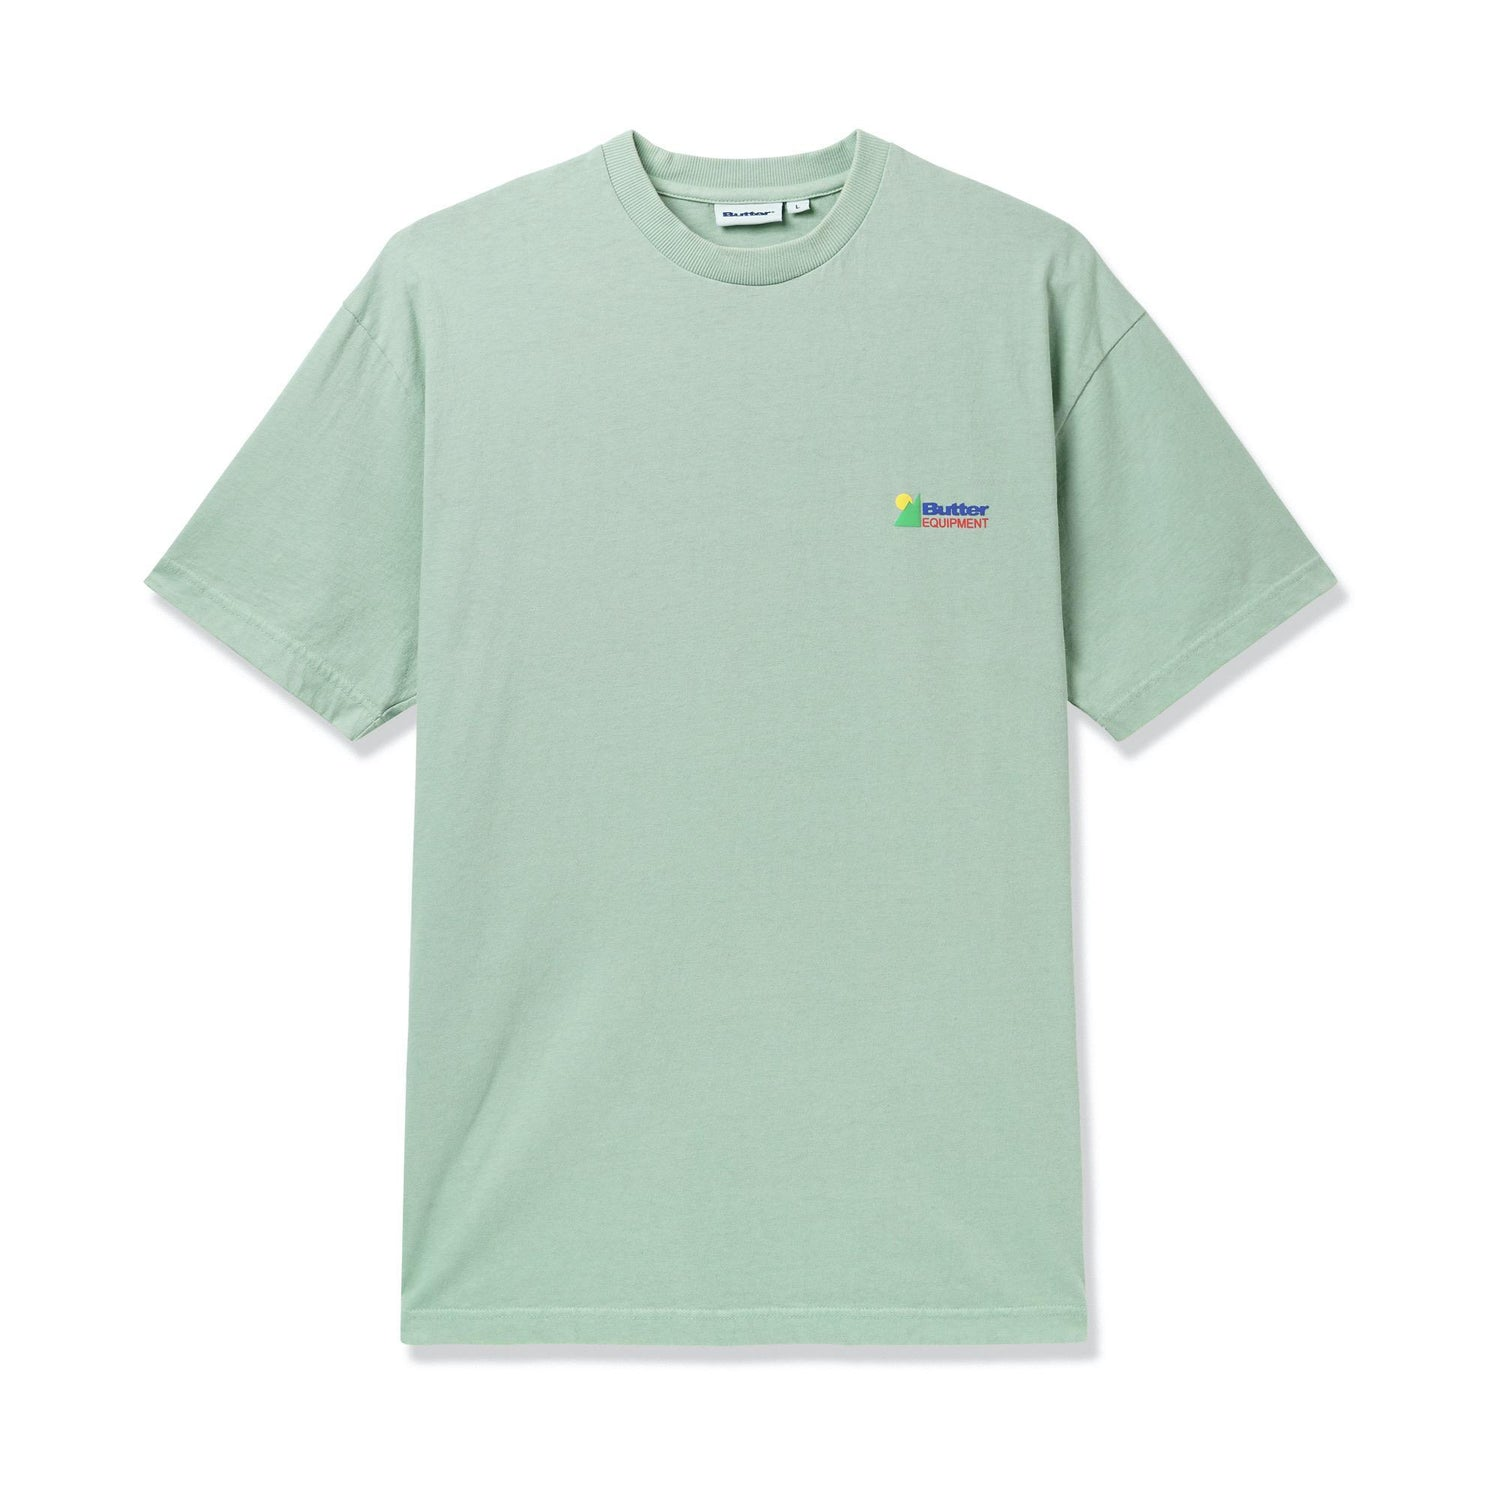 Equipment Tee, Mint